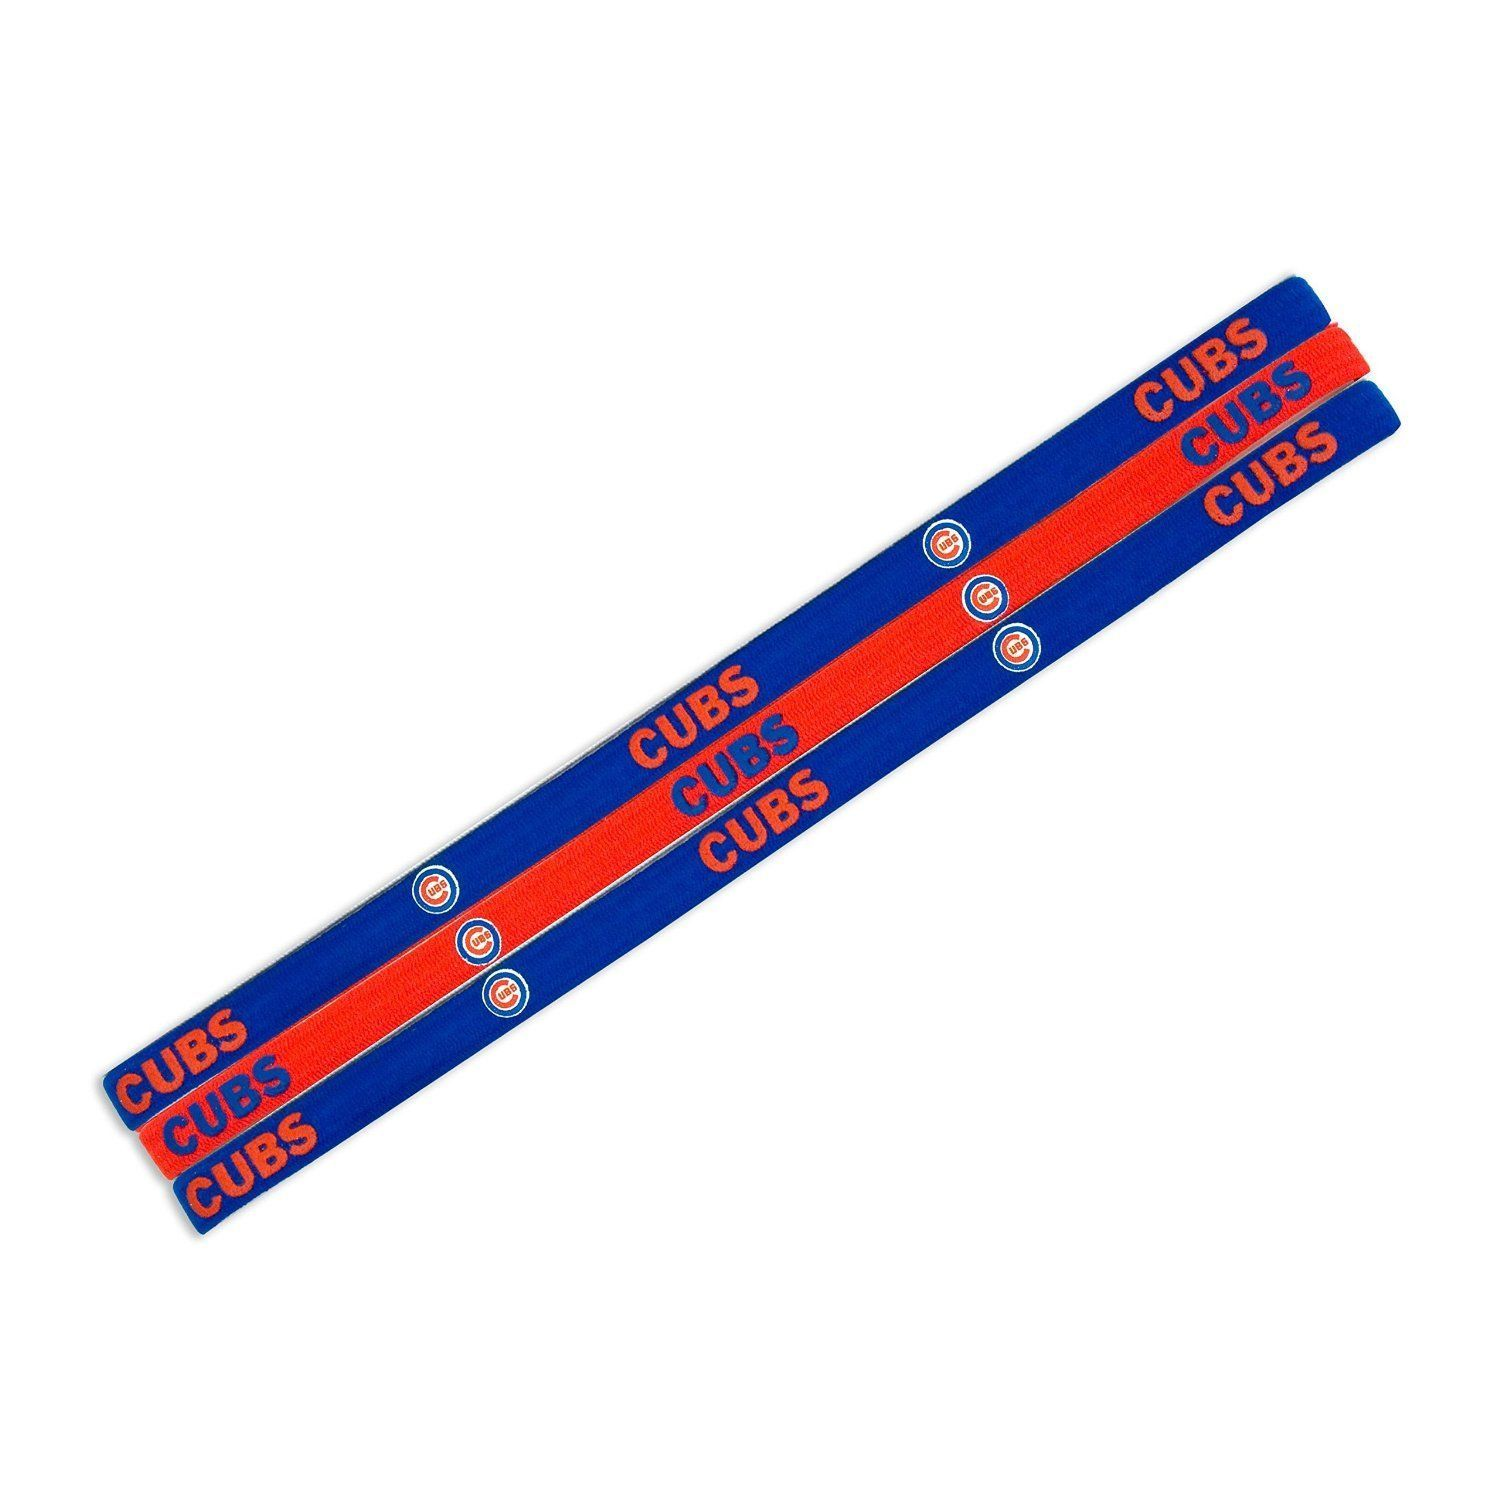 CHICAGO CUBS Pack of 3 ELASTIC HAIR HEADBANDS TEAM LOGO MLB BASEBALL